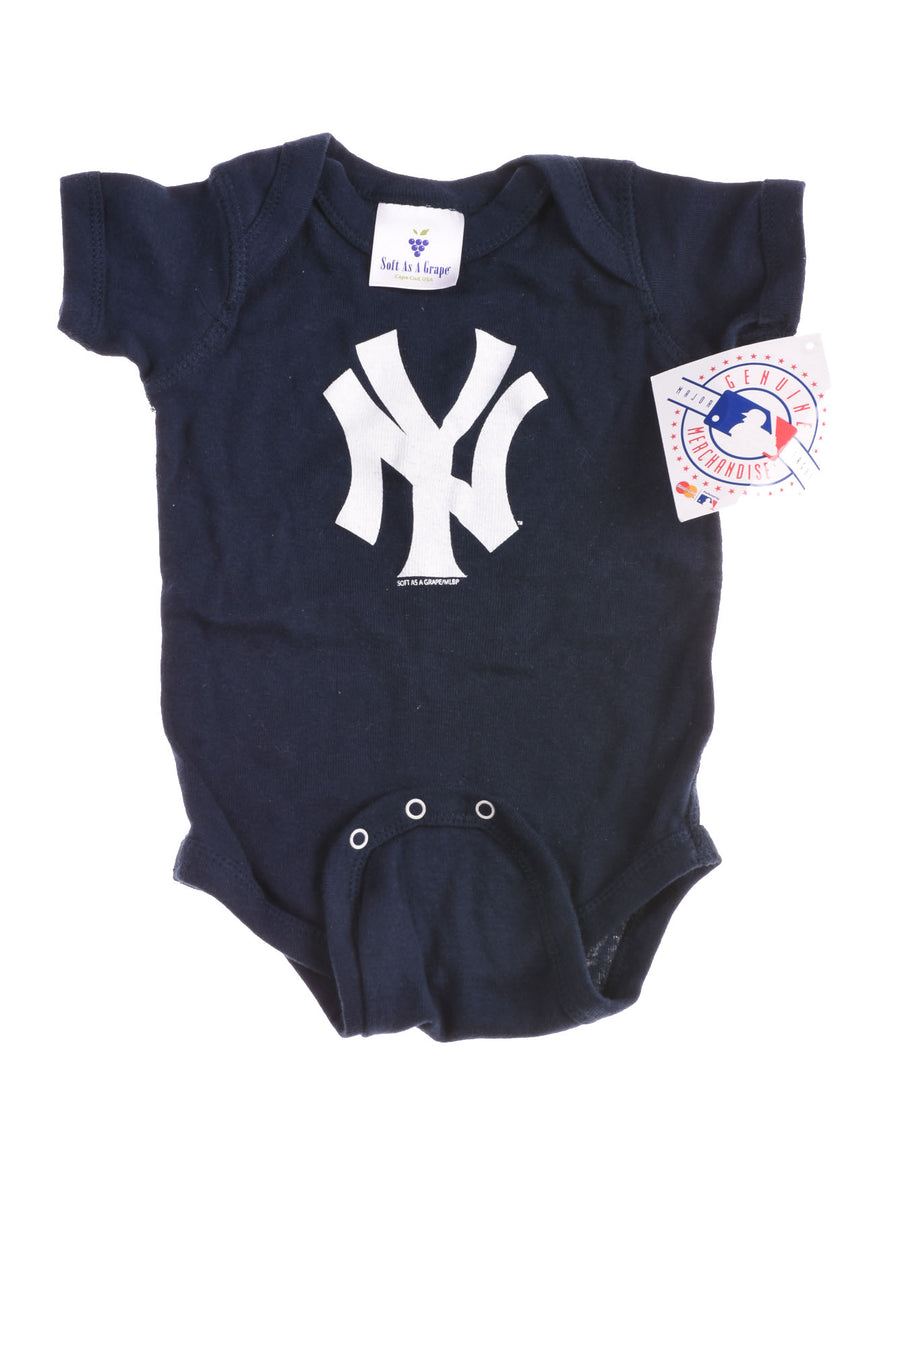 Baby Boy's New York Yankees Body Suit By Soft As A Grape